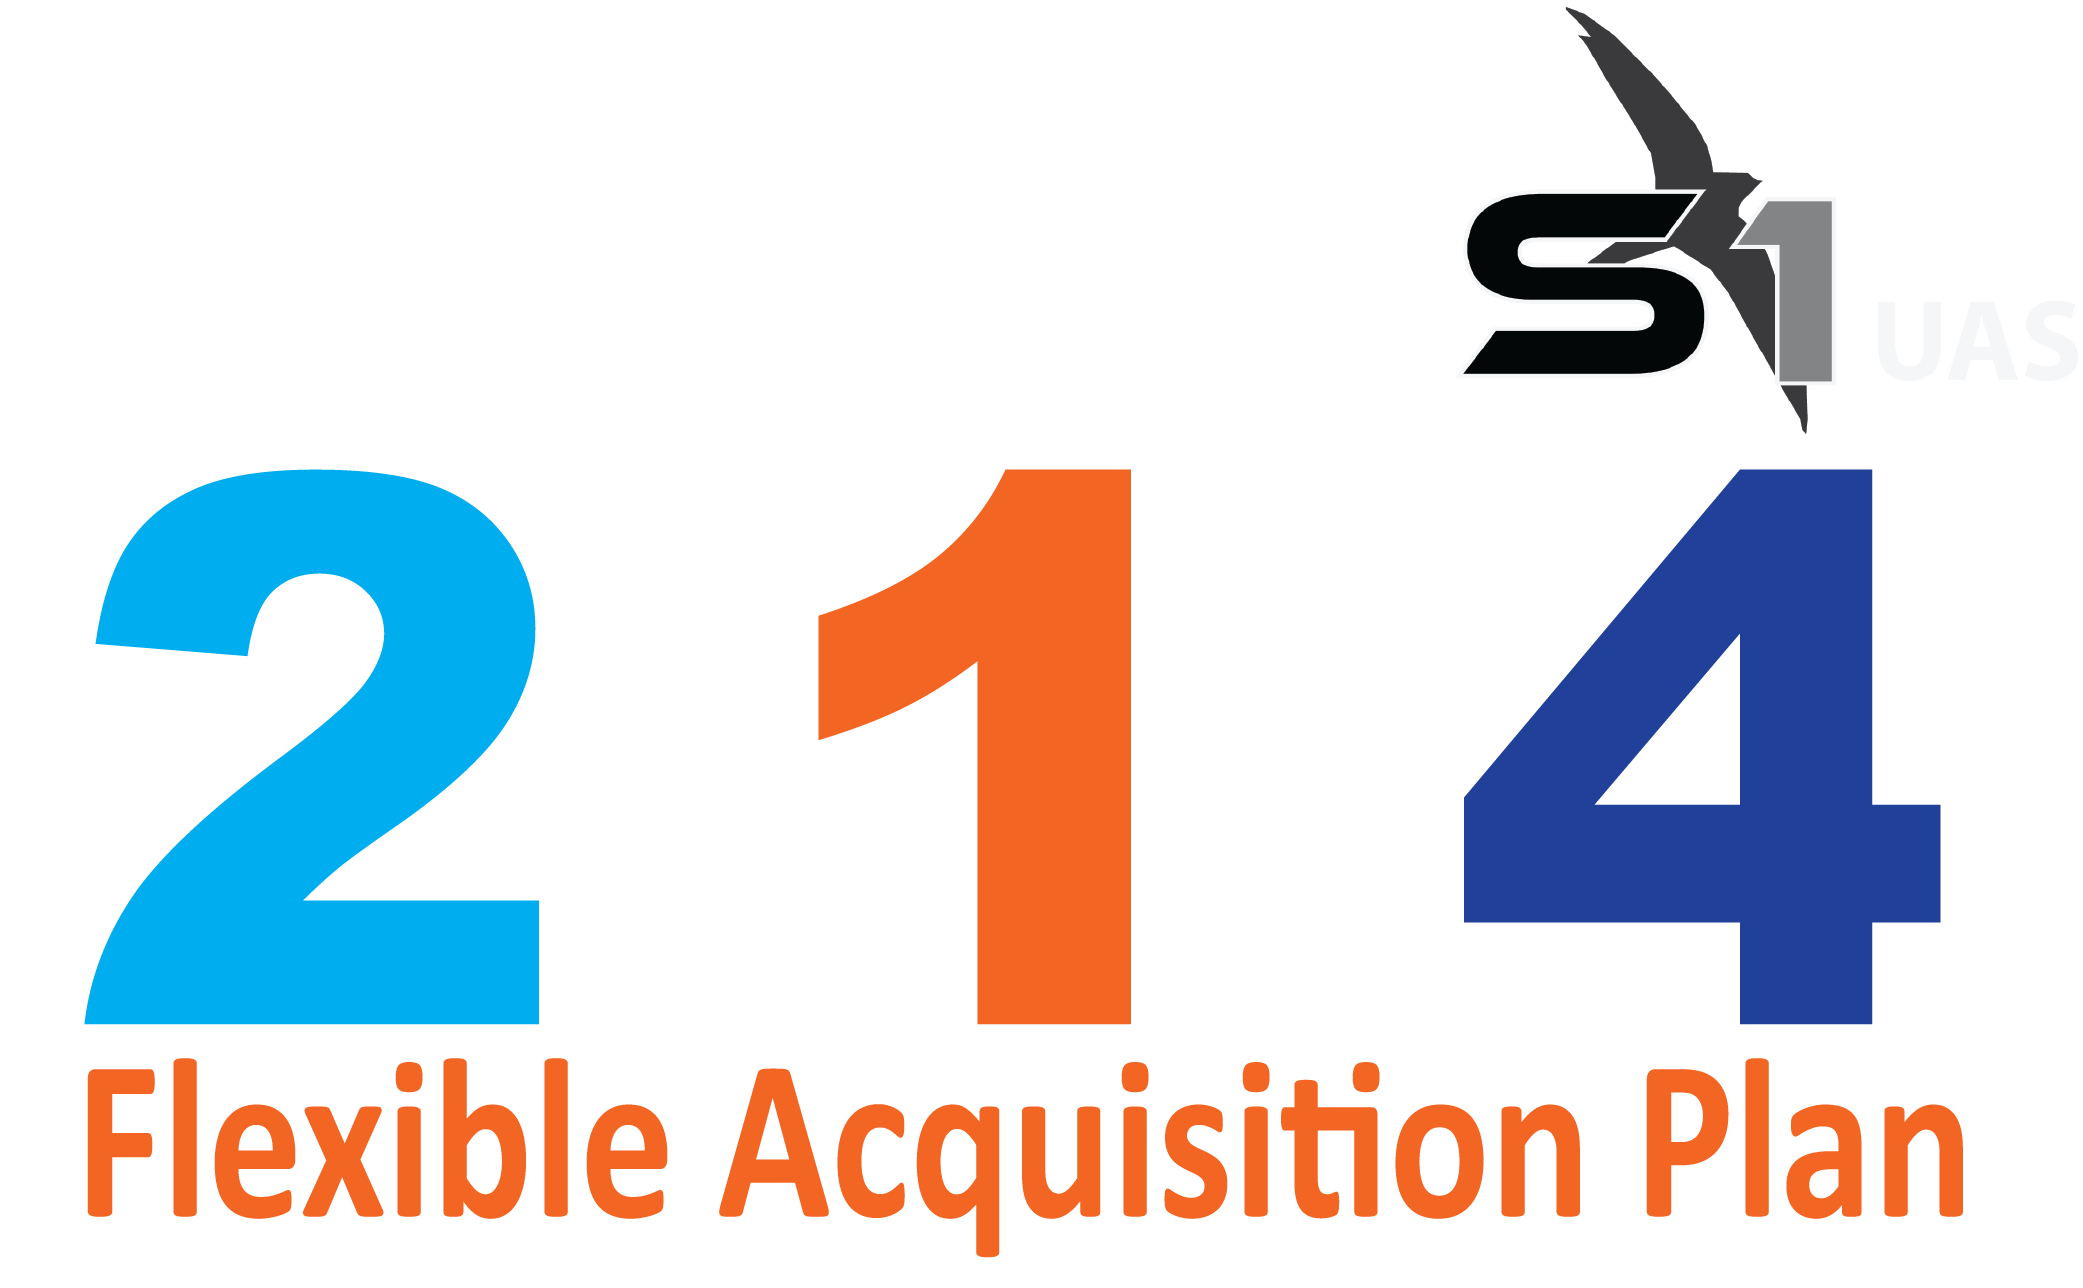 S1 2-1-4 Flexible Acquisition Plan